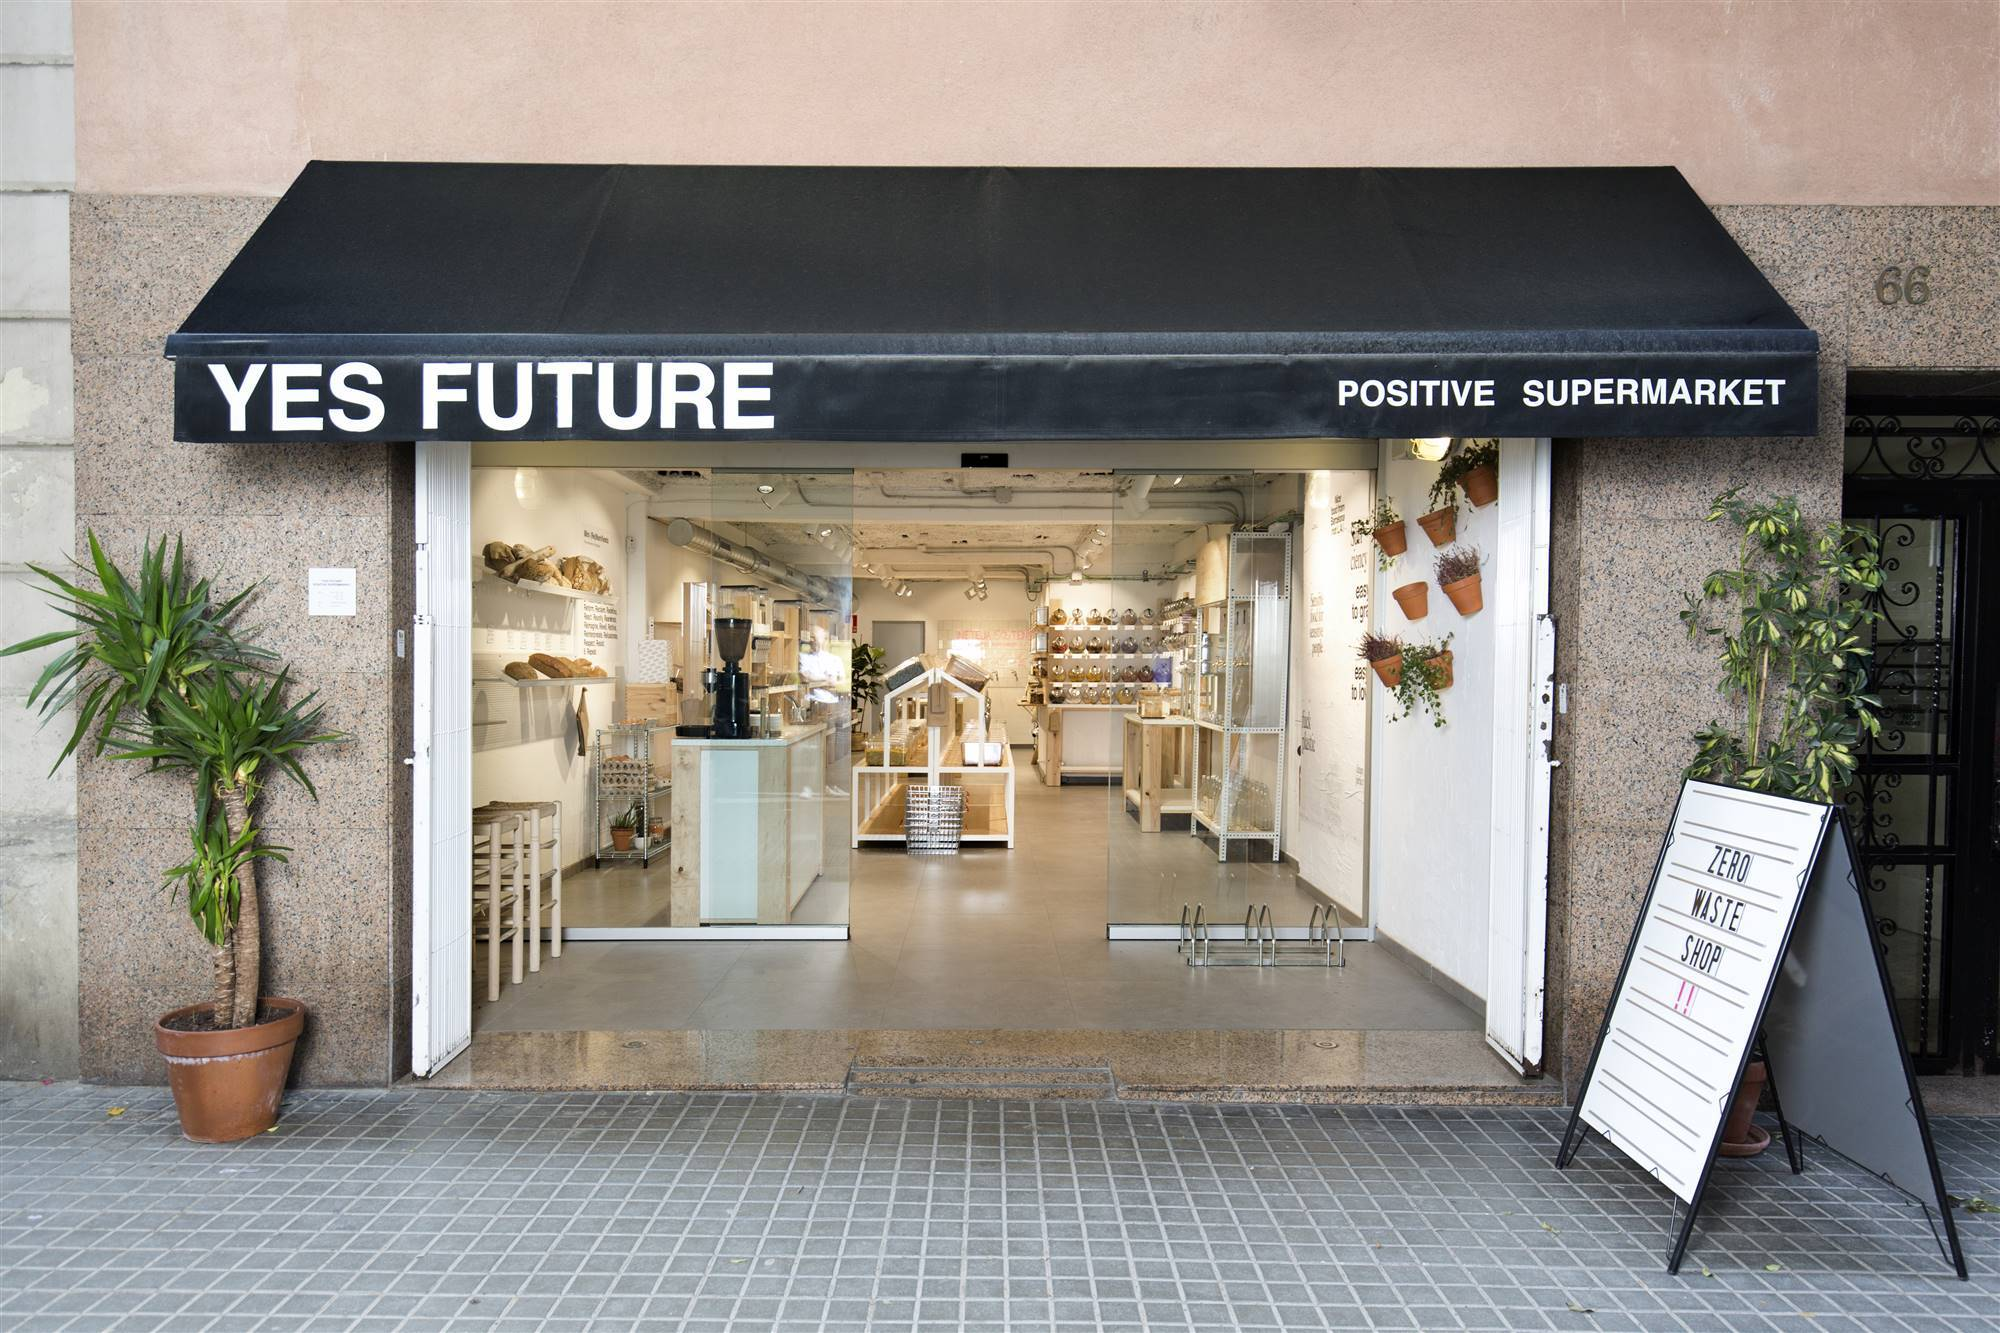 Supermercado Yes Future en Barcelona.